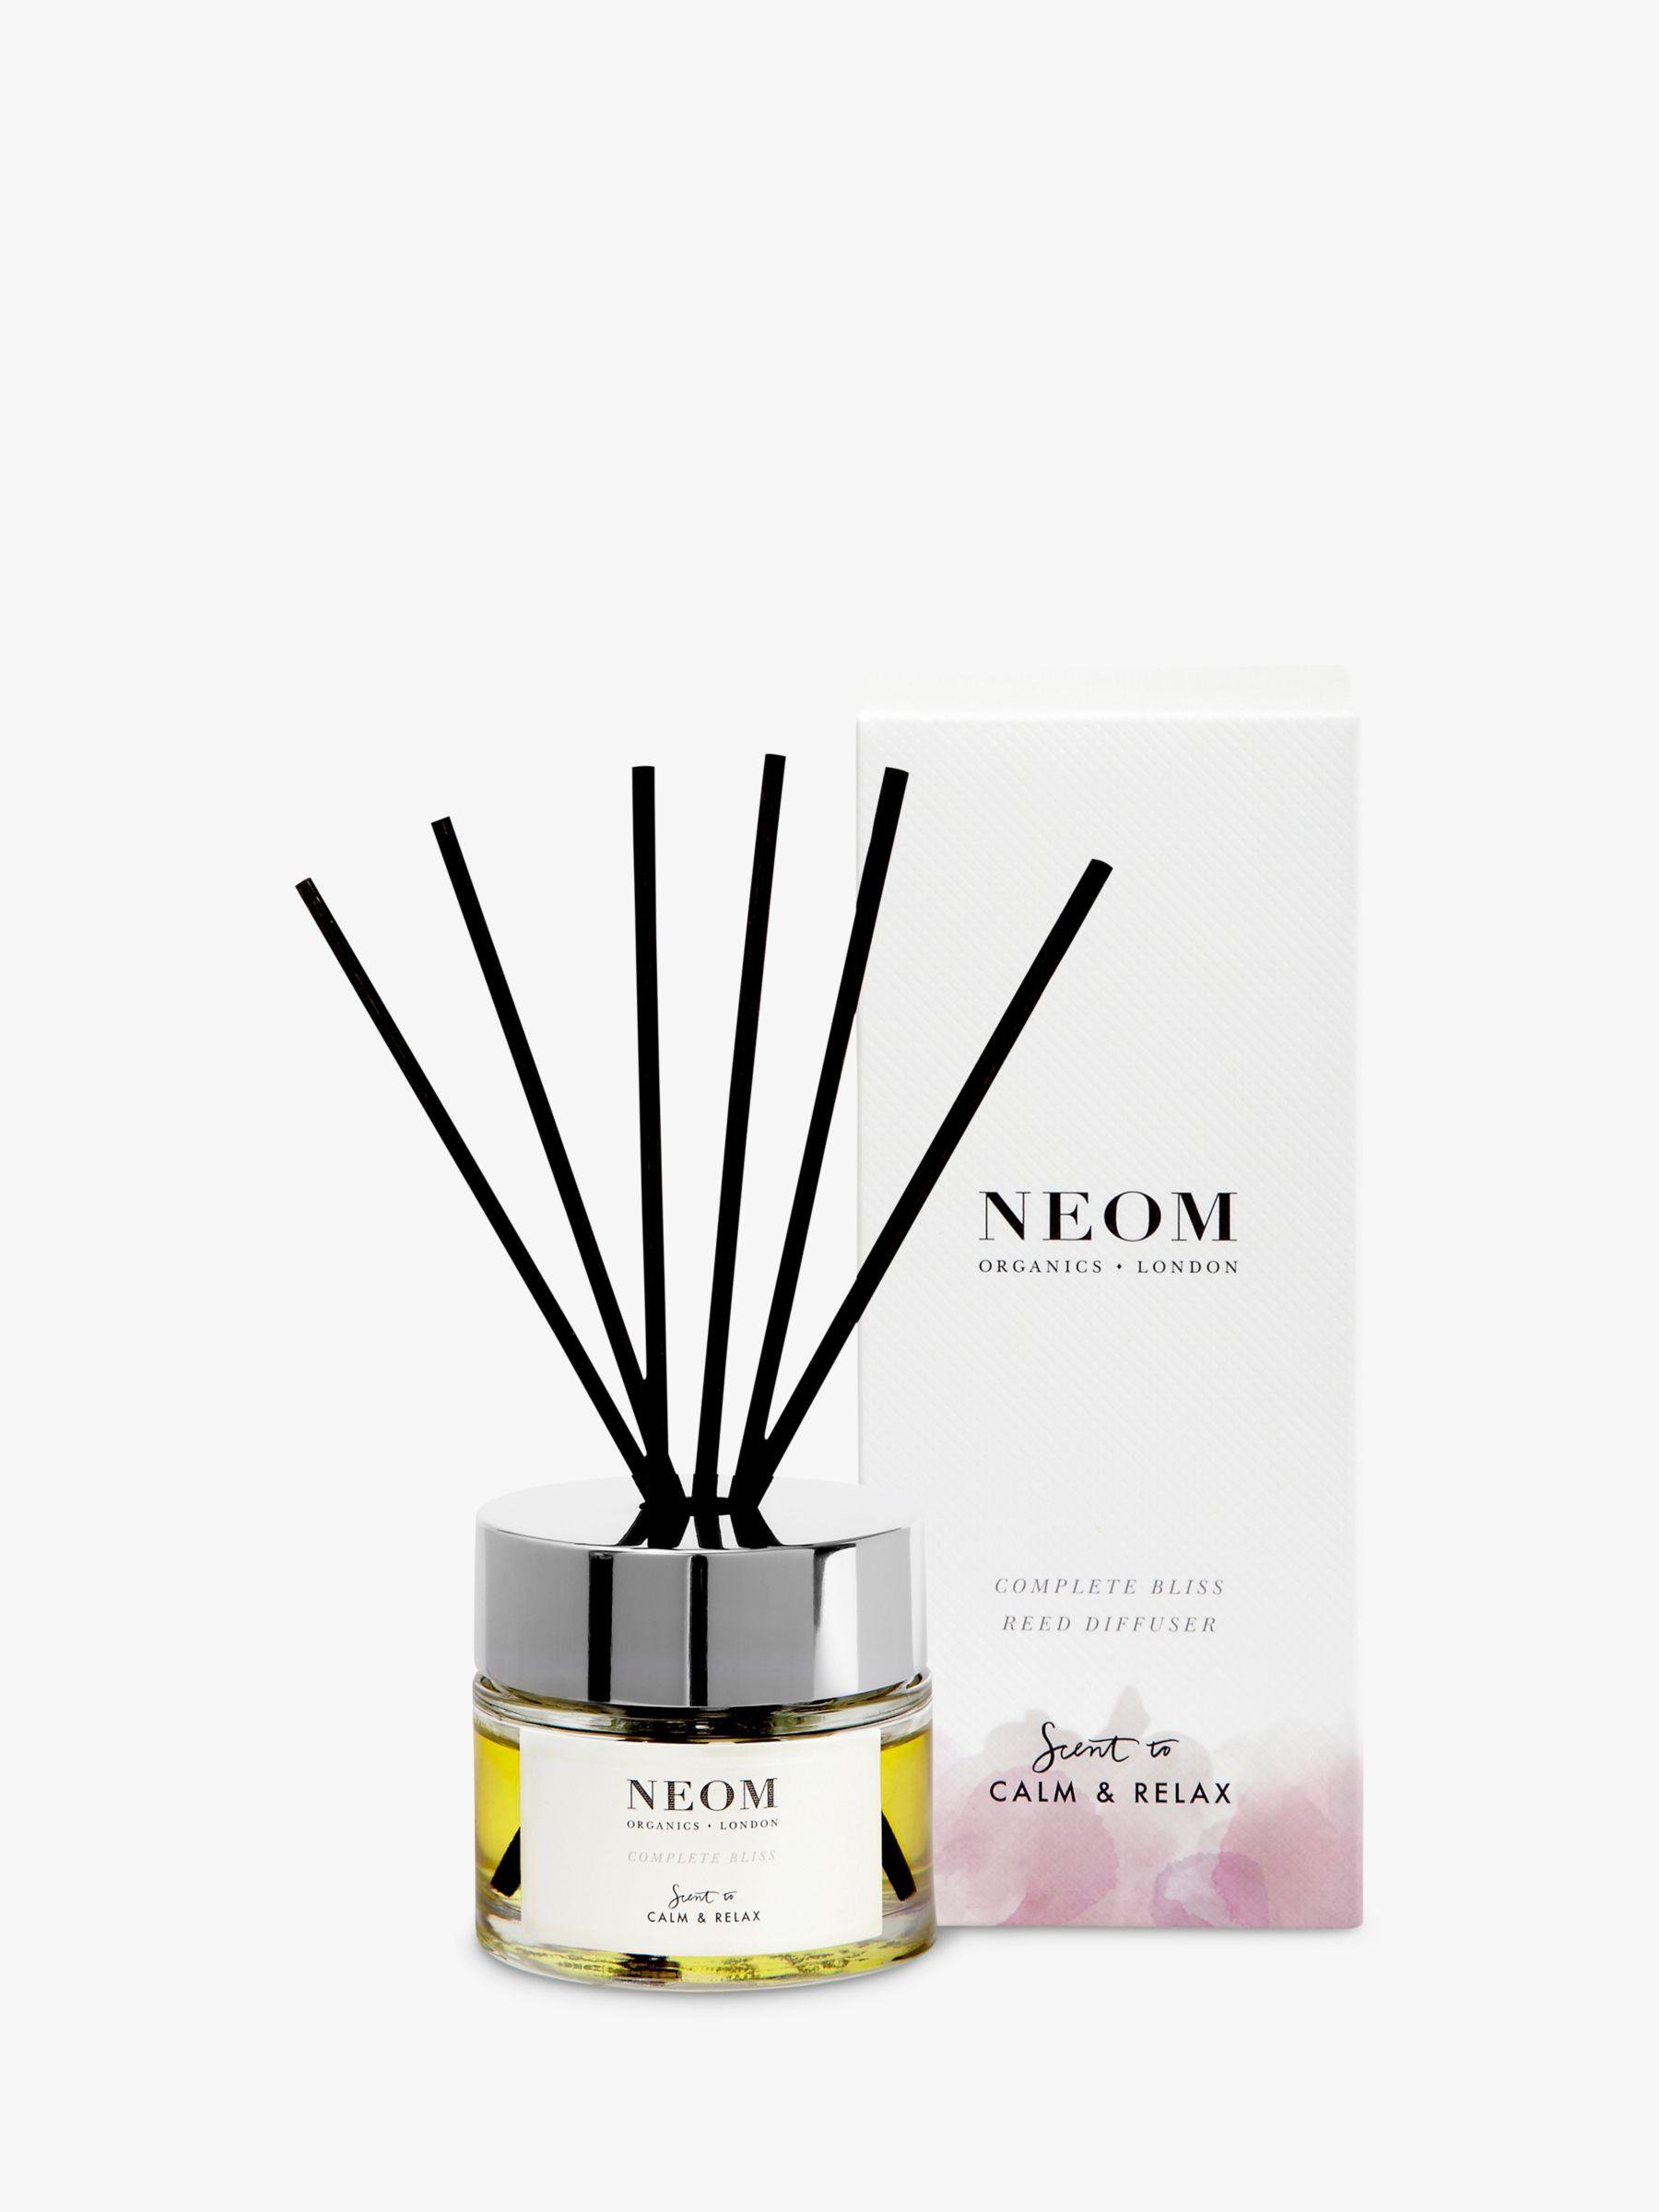 Neom Neom Complete Bliss Diffuser